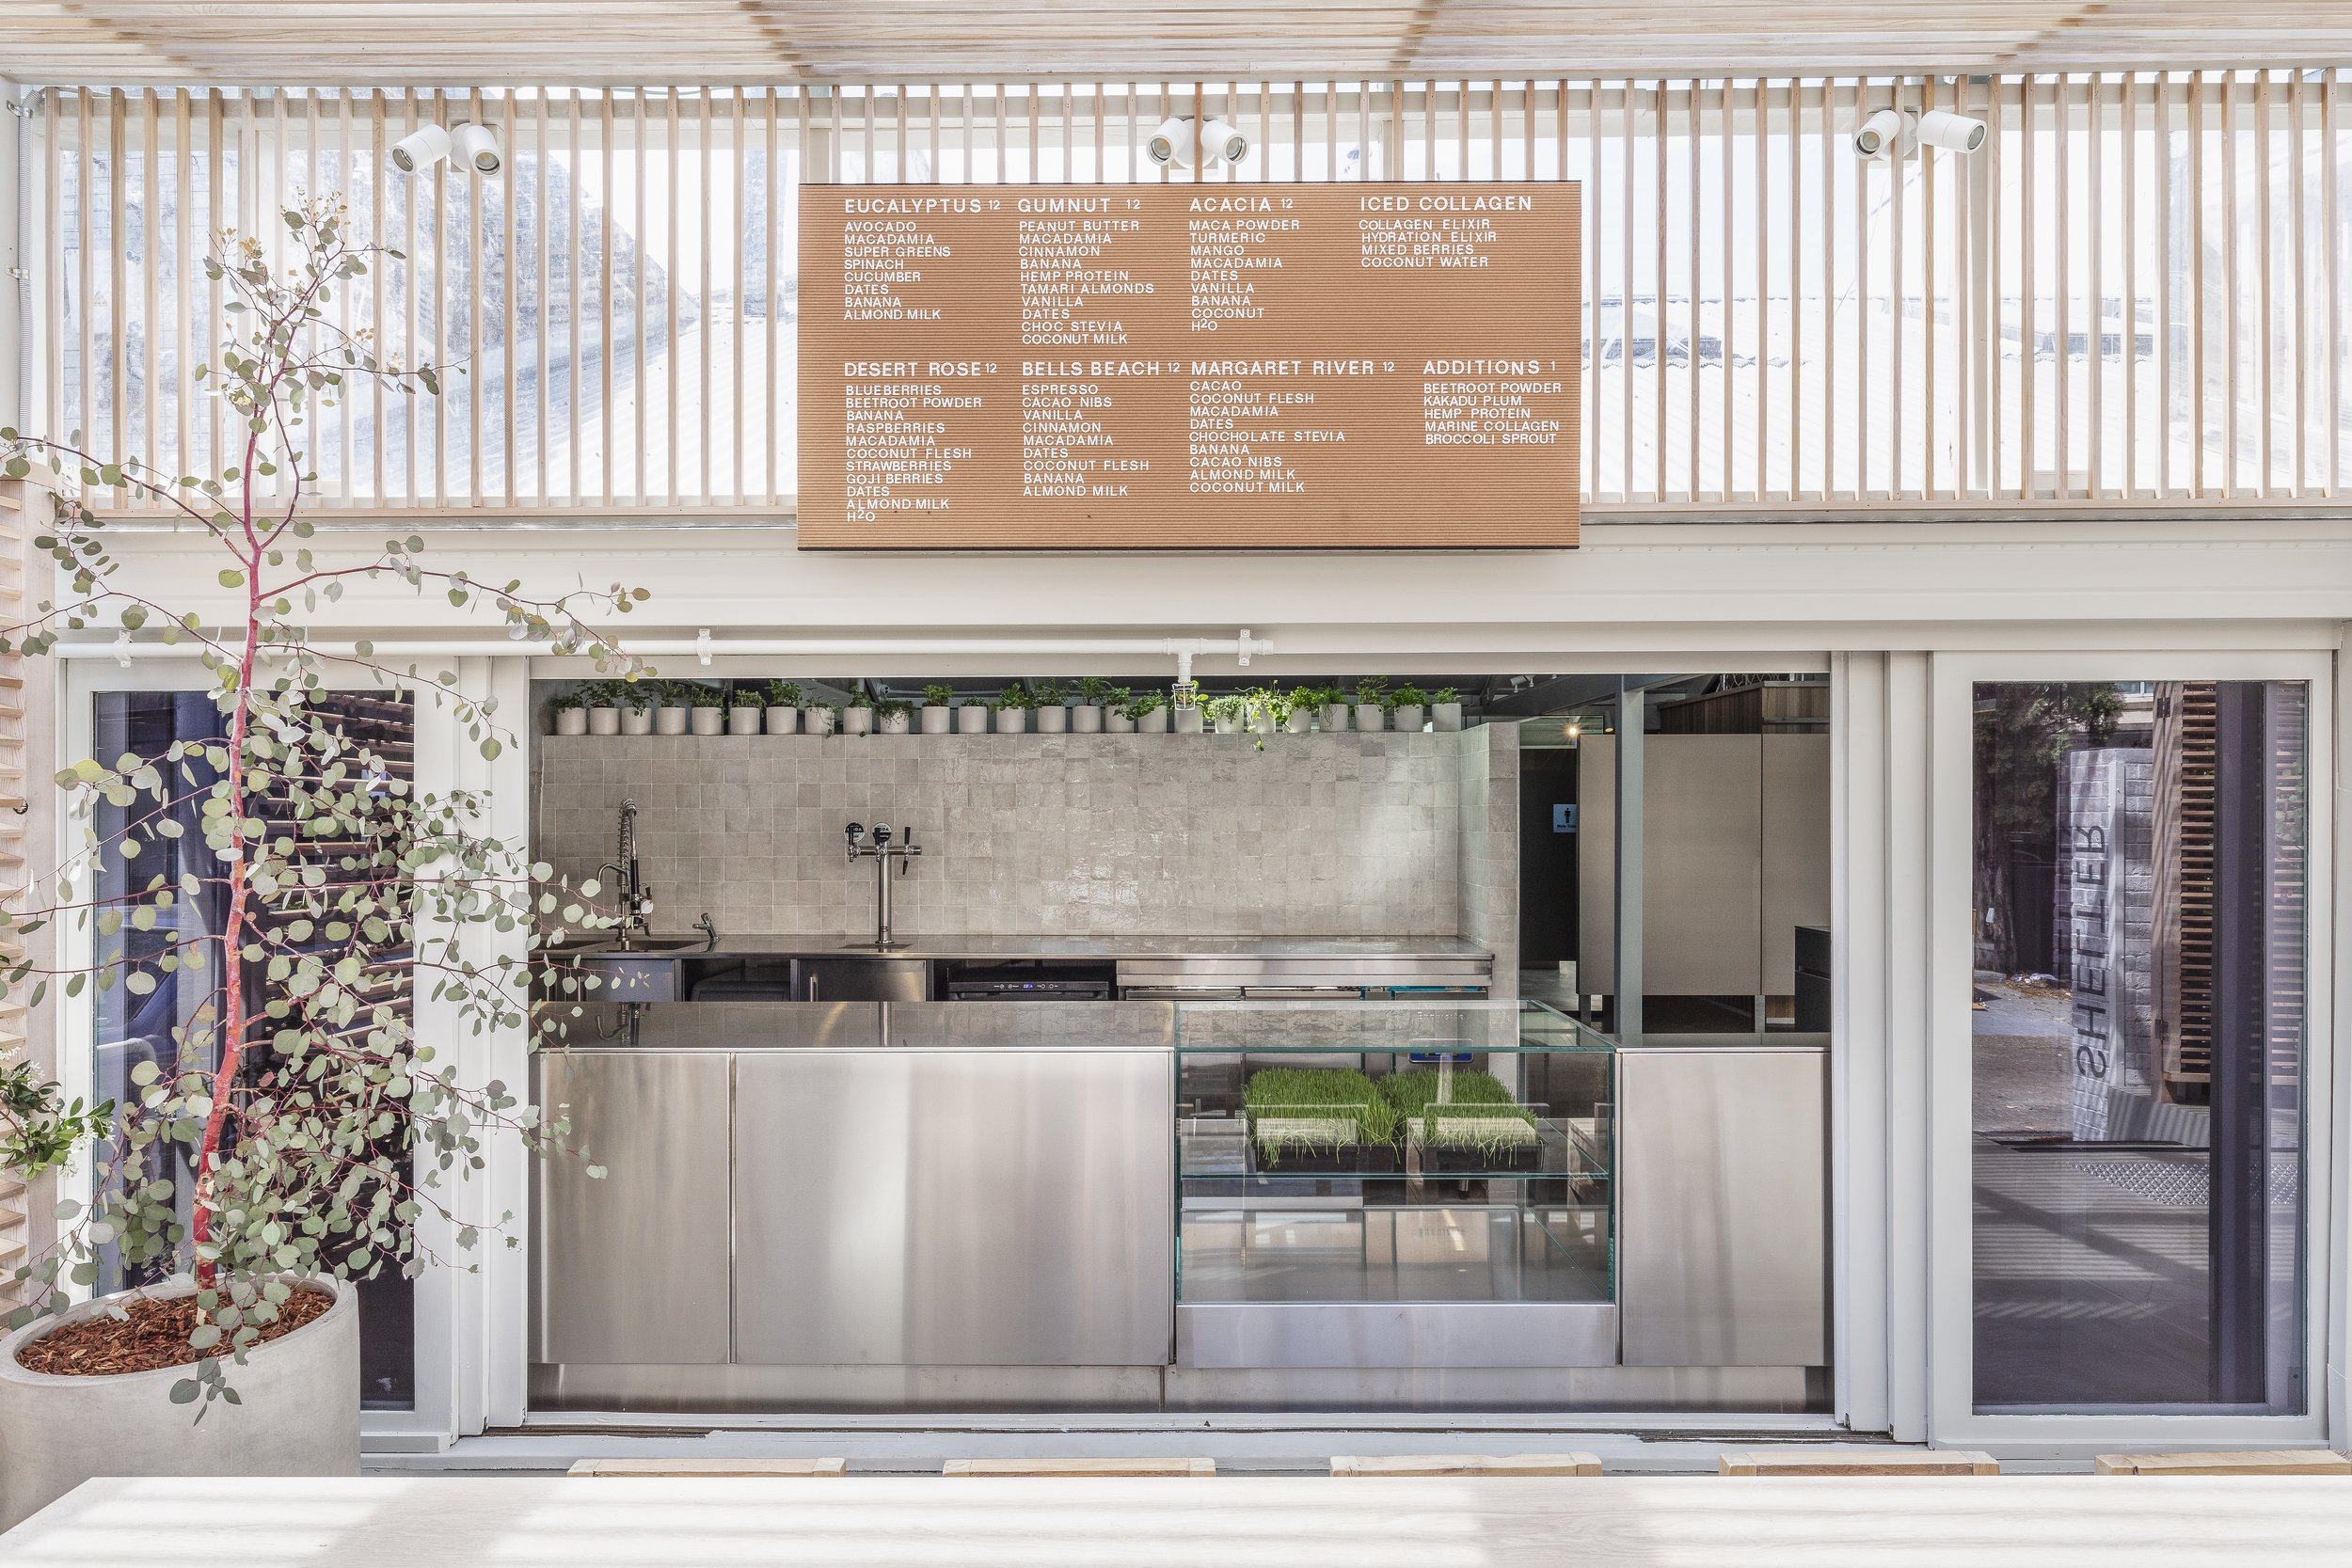 The Juicery - an in-house smoothie bar at  Shelter  in Sydney's Double Bay.